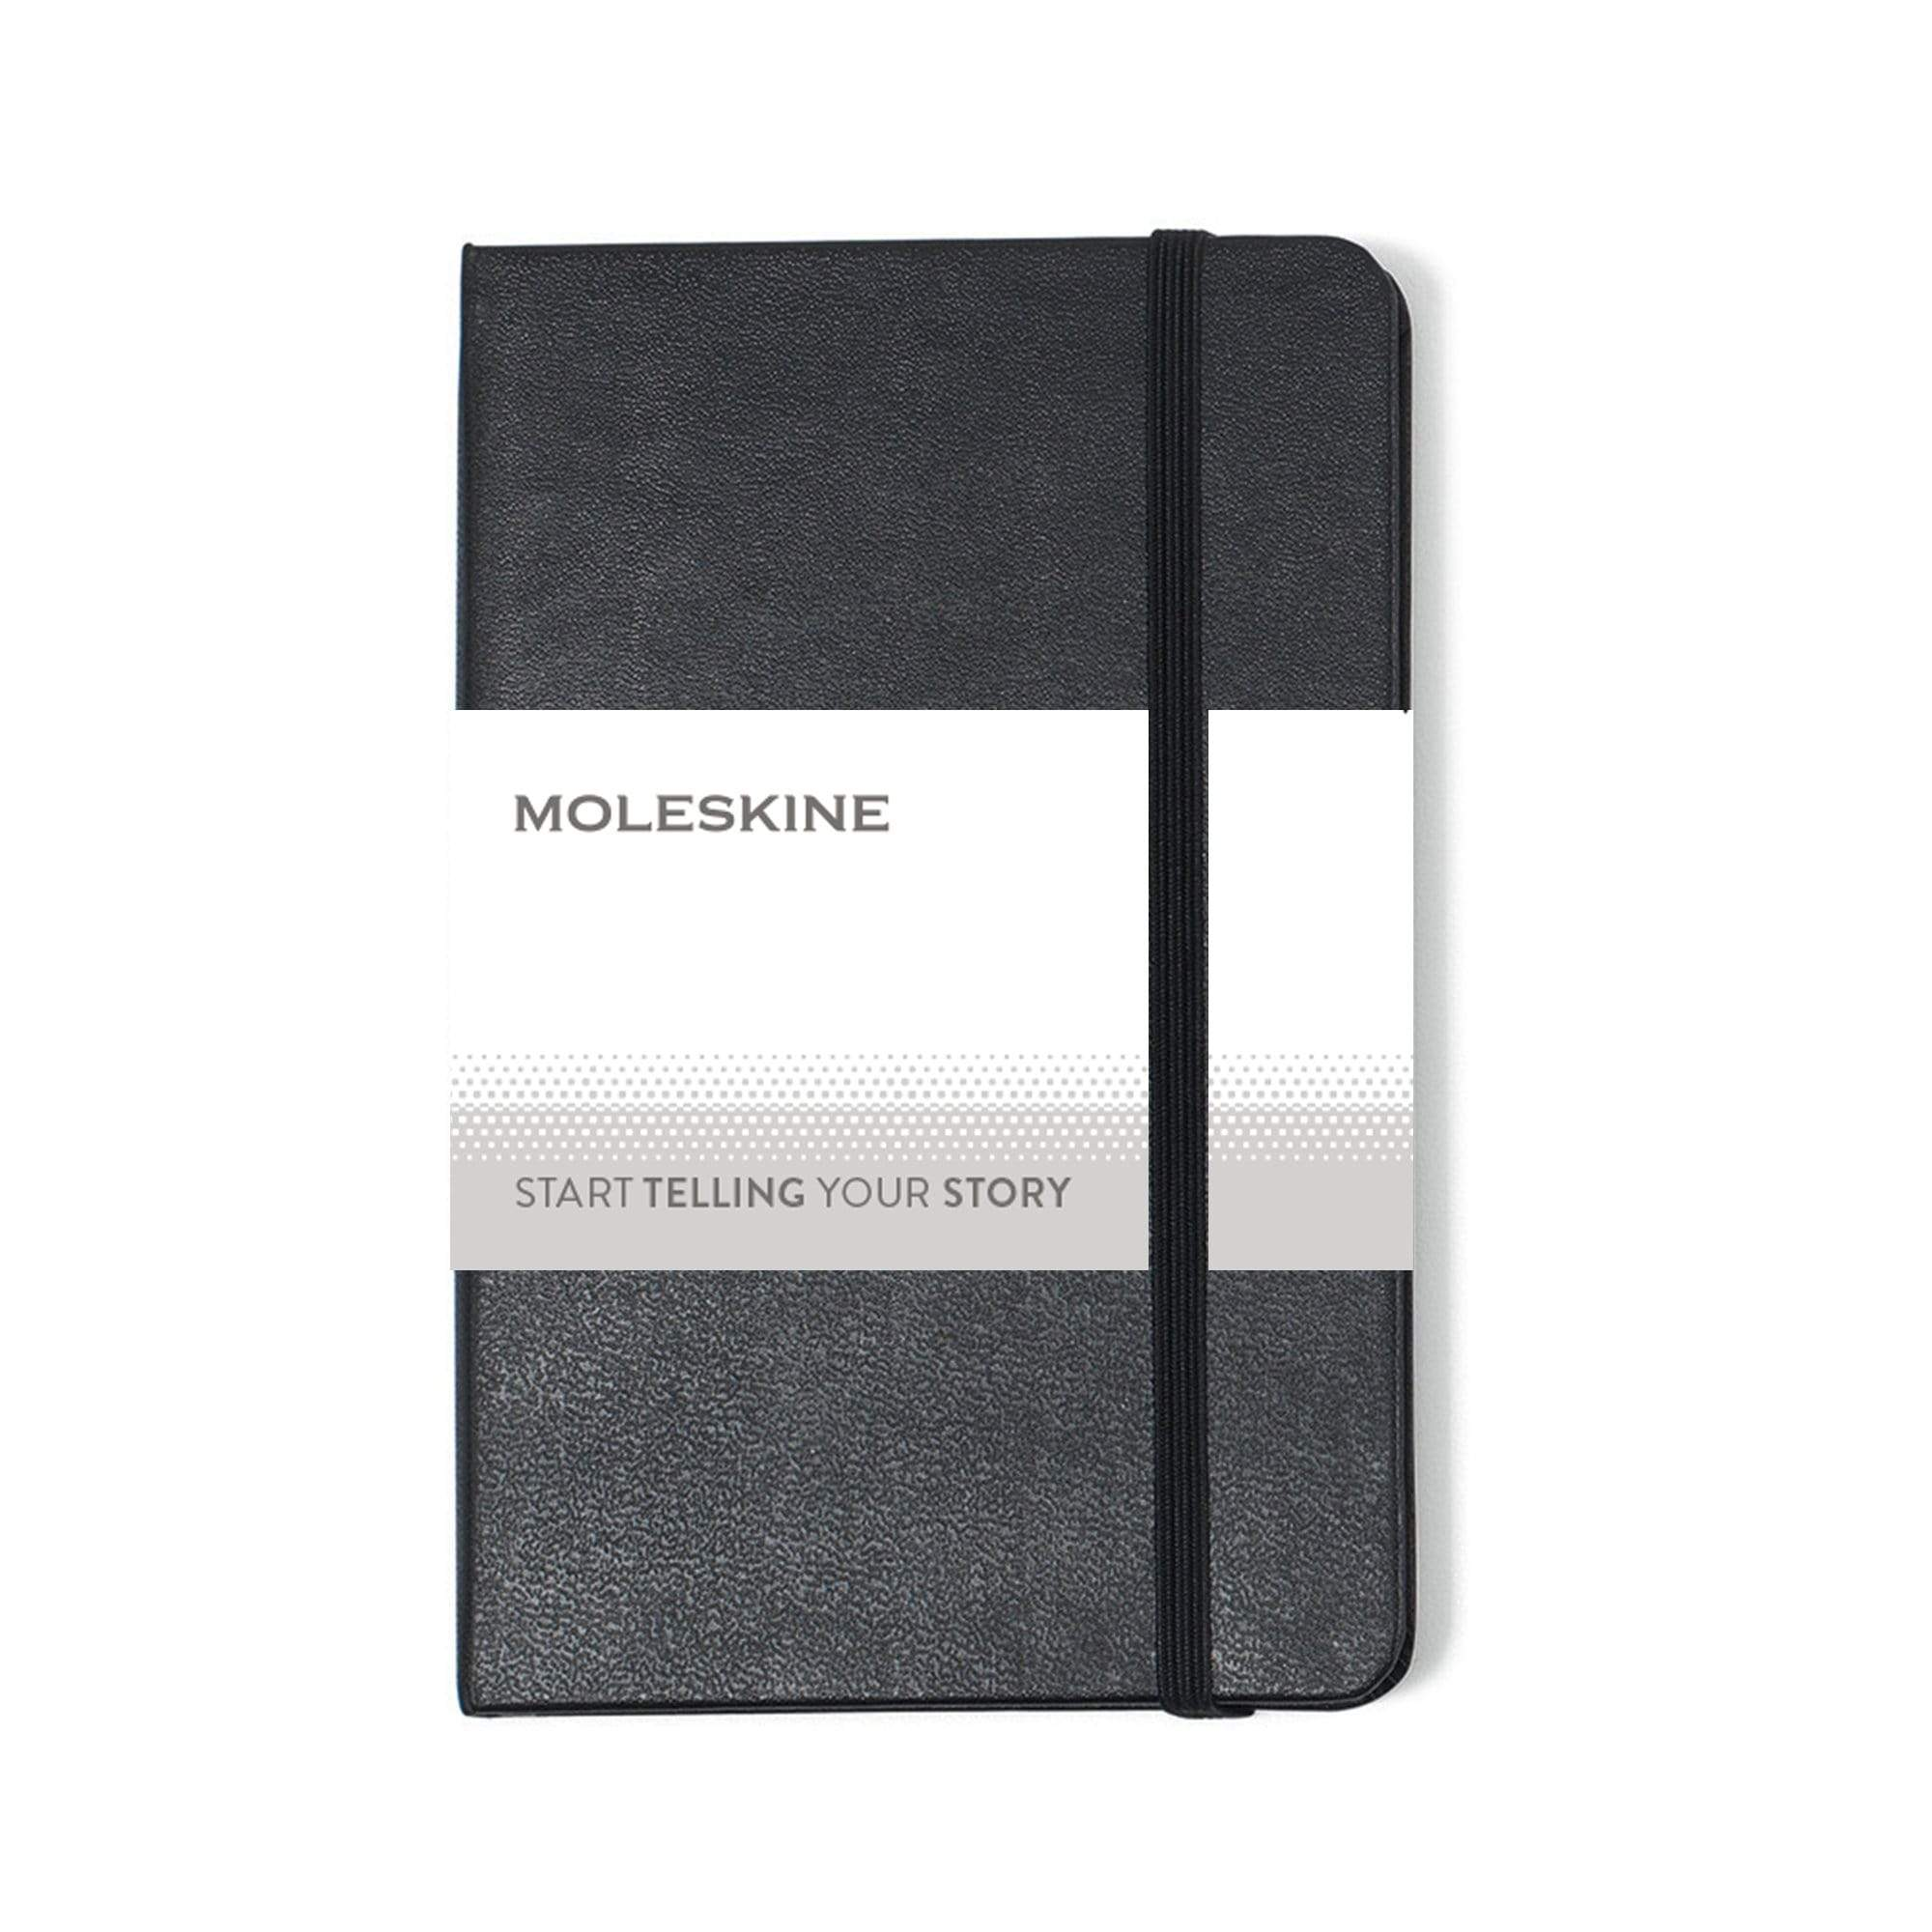 "Moleskine - 25 piece minimum Accessories OSFA / BLACK Moleskine® Hard Cover Ruled Pocket Notebook (3.5"" x 5.5"")"